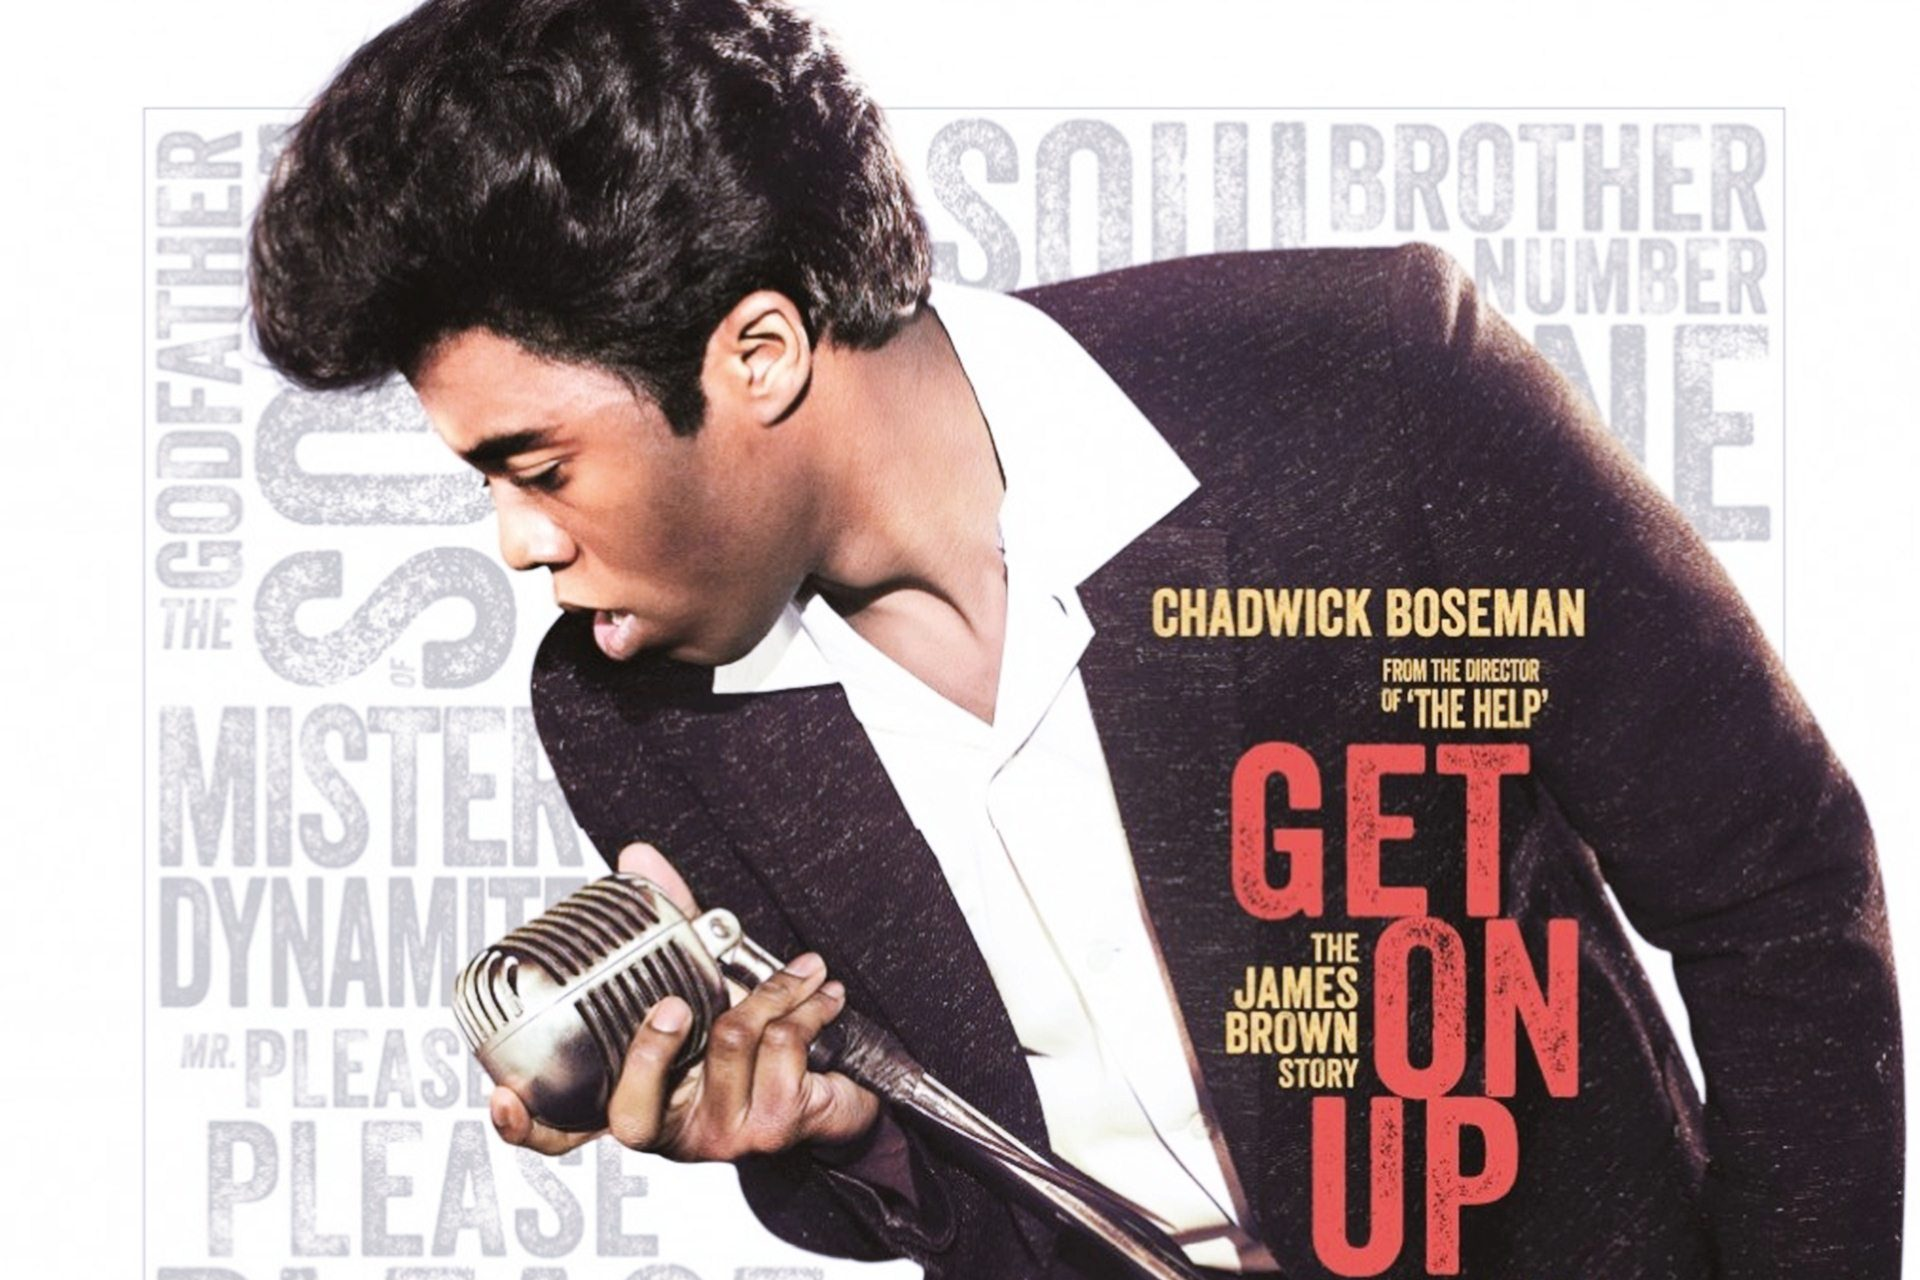 Deauville 2014 : Get on Up